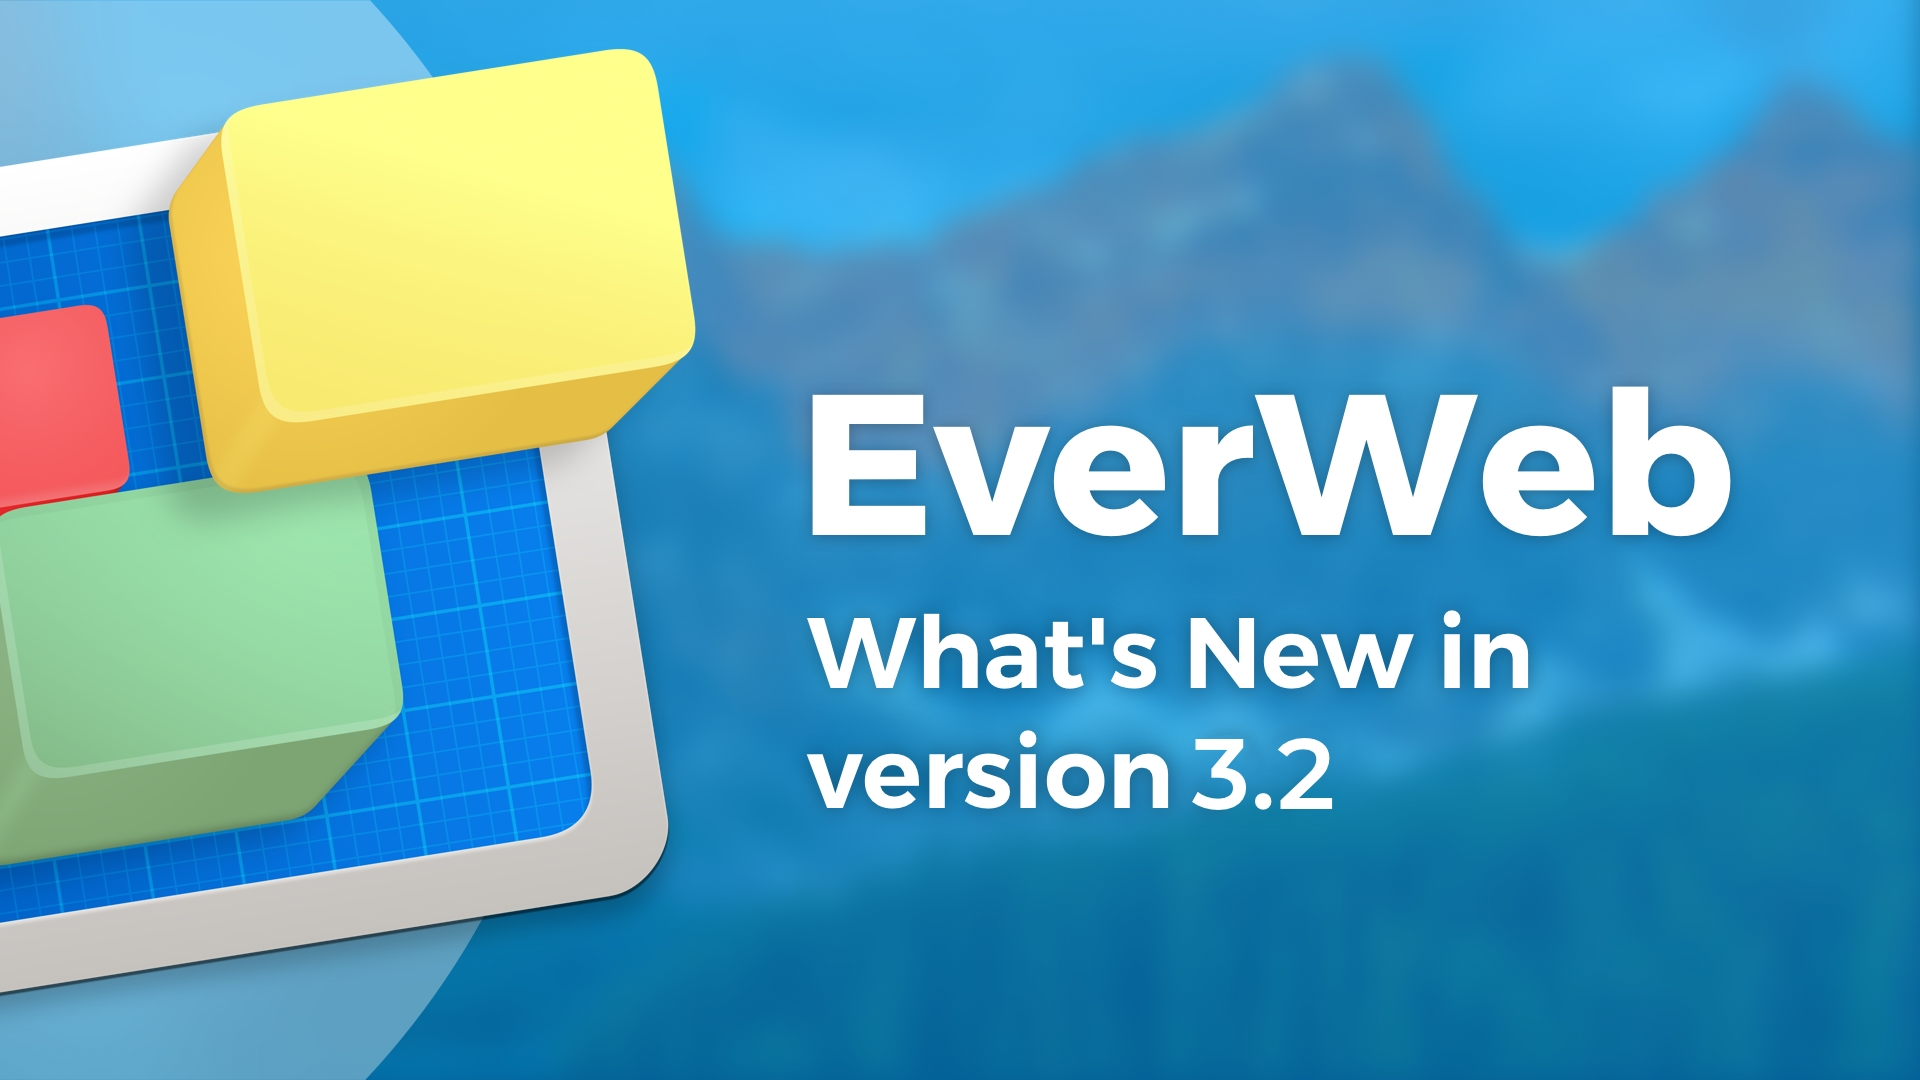 Introducing EverWeb 3.2! More Contact Form Advanced Features, Scroll Position Goes Responsive and Much More!